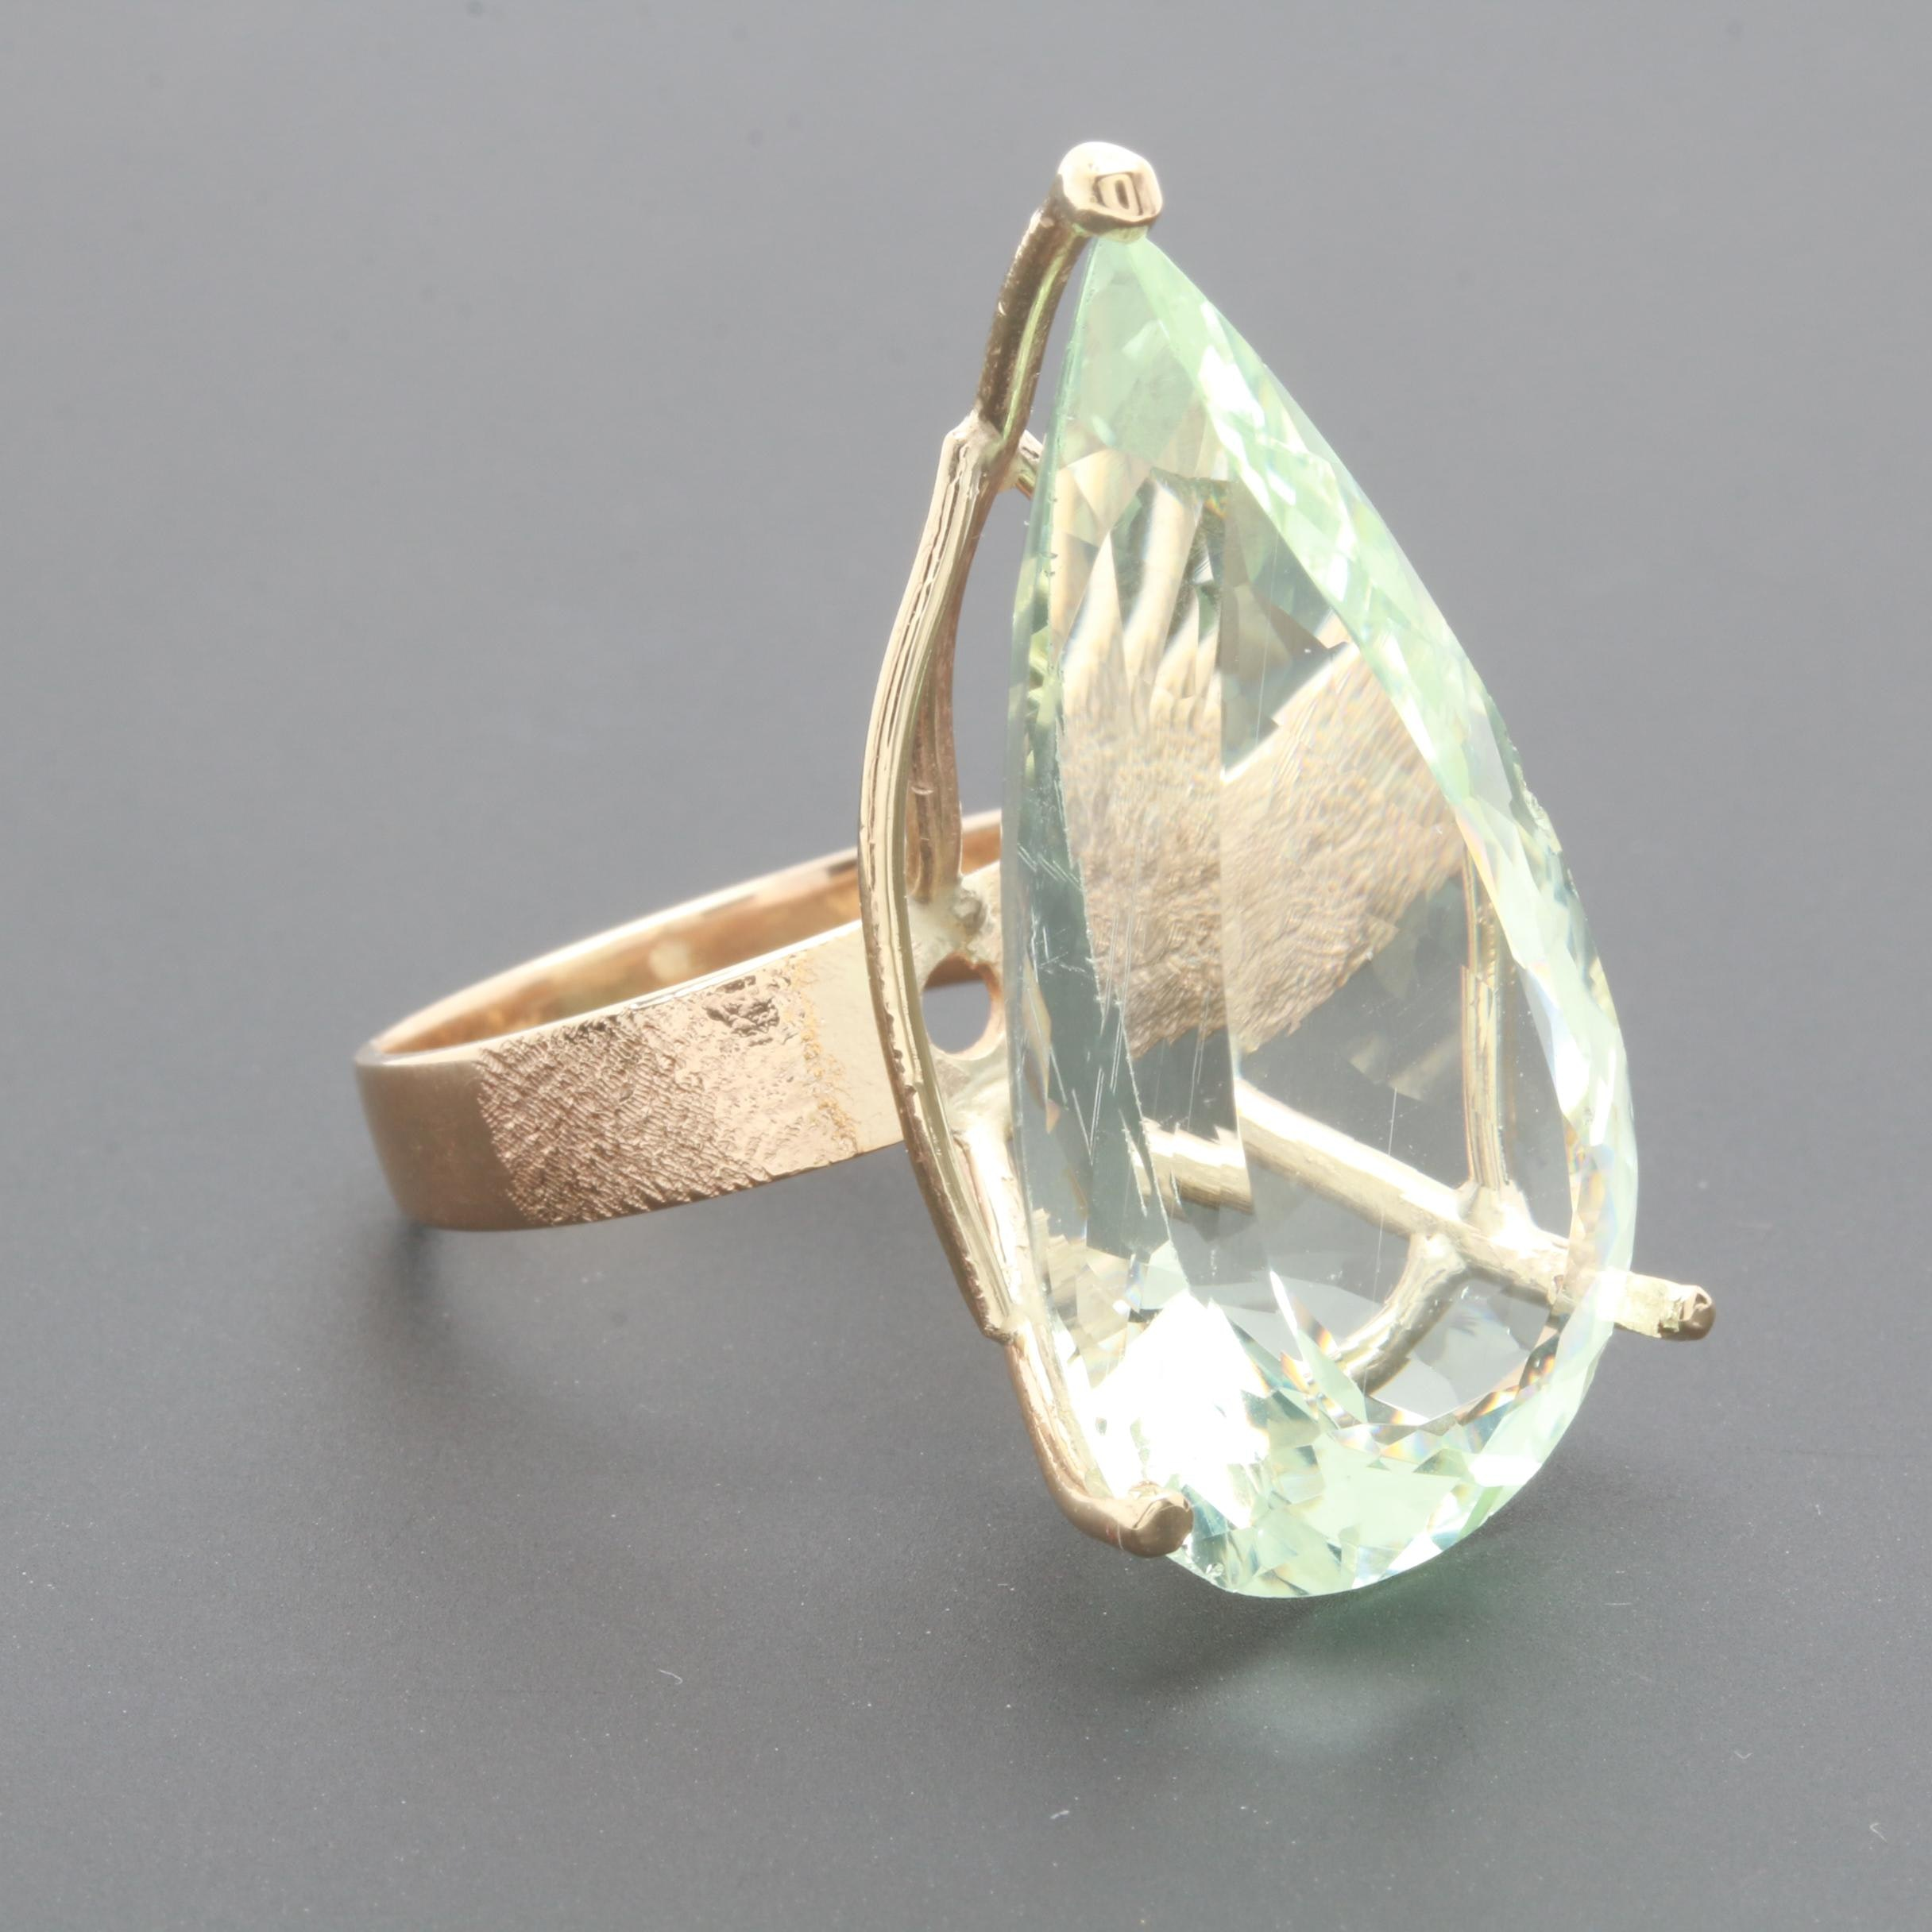 14K Yellow Gold 25.53 CT Green Beryl Solitaire Cocktail Ring